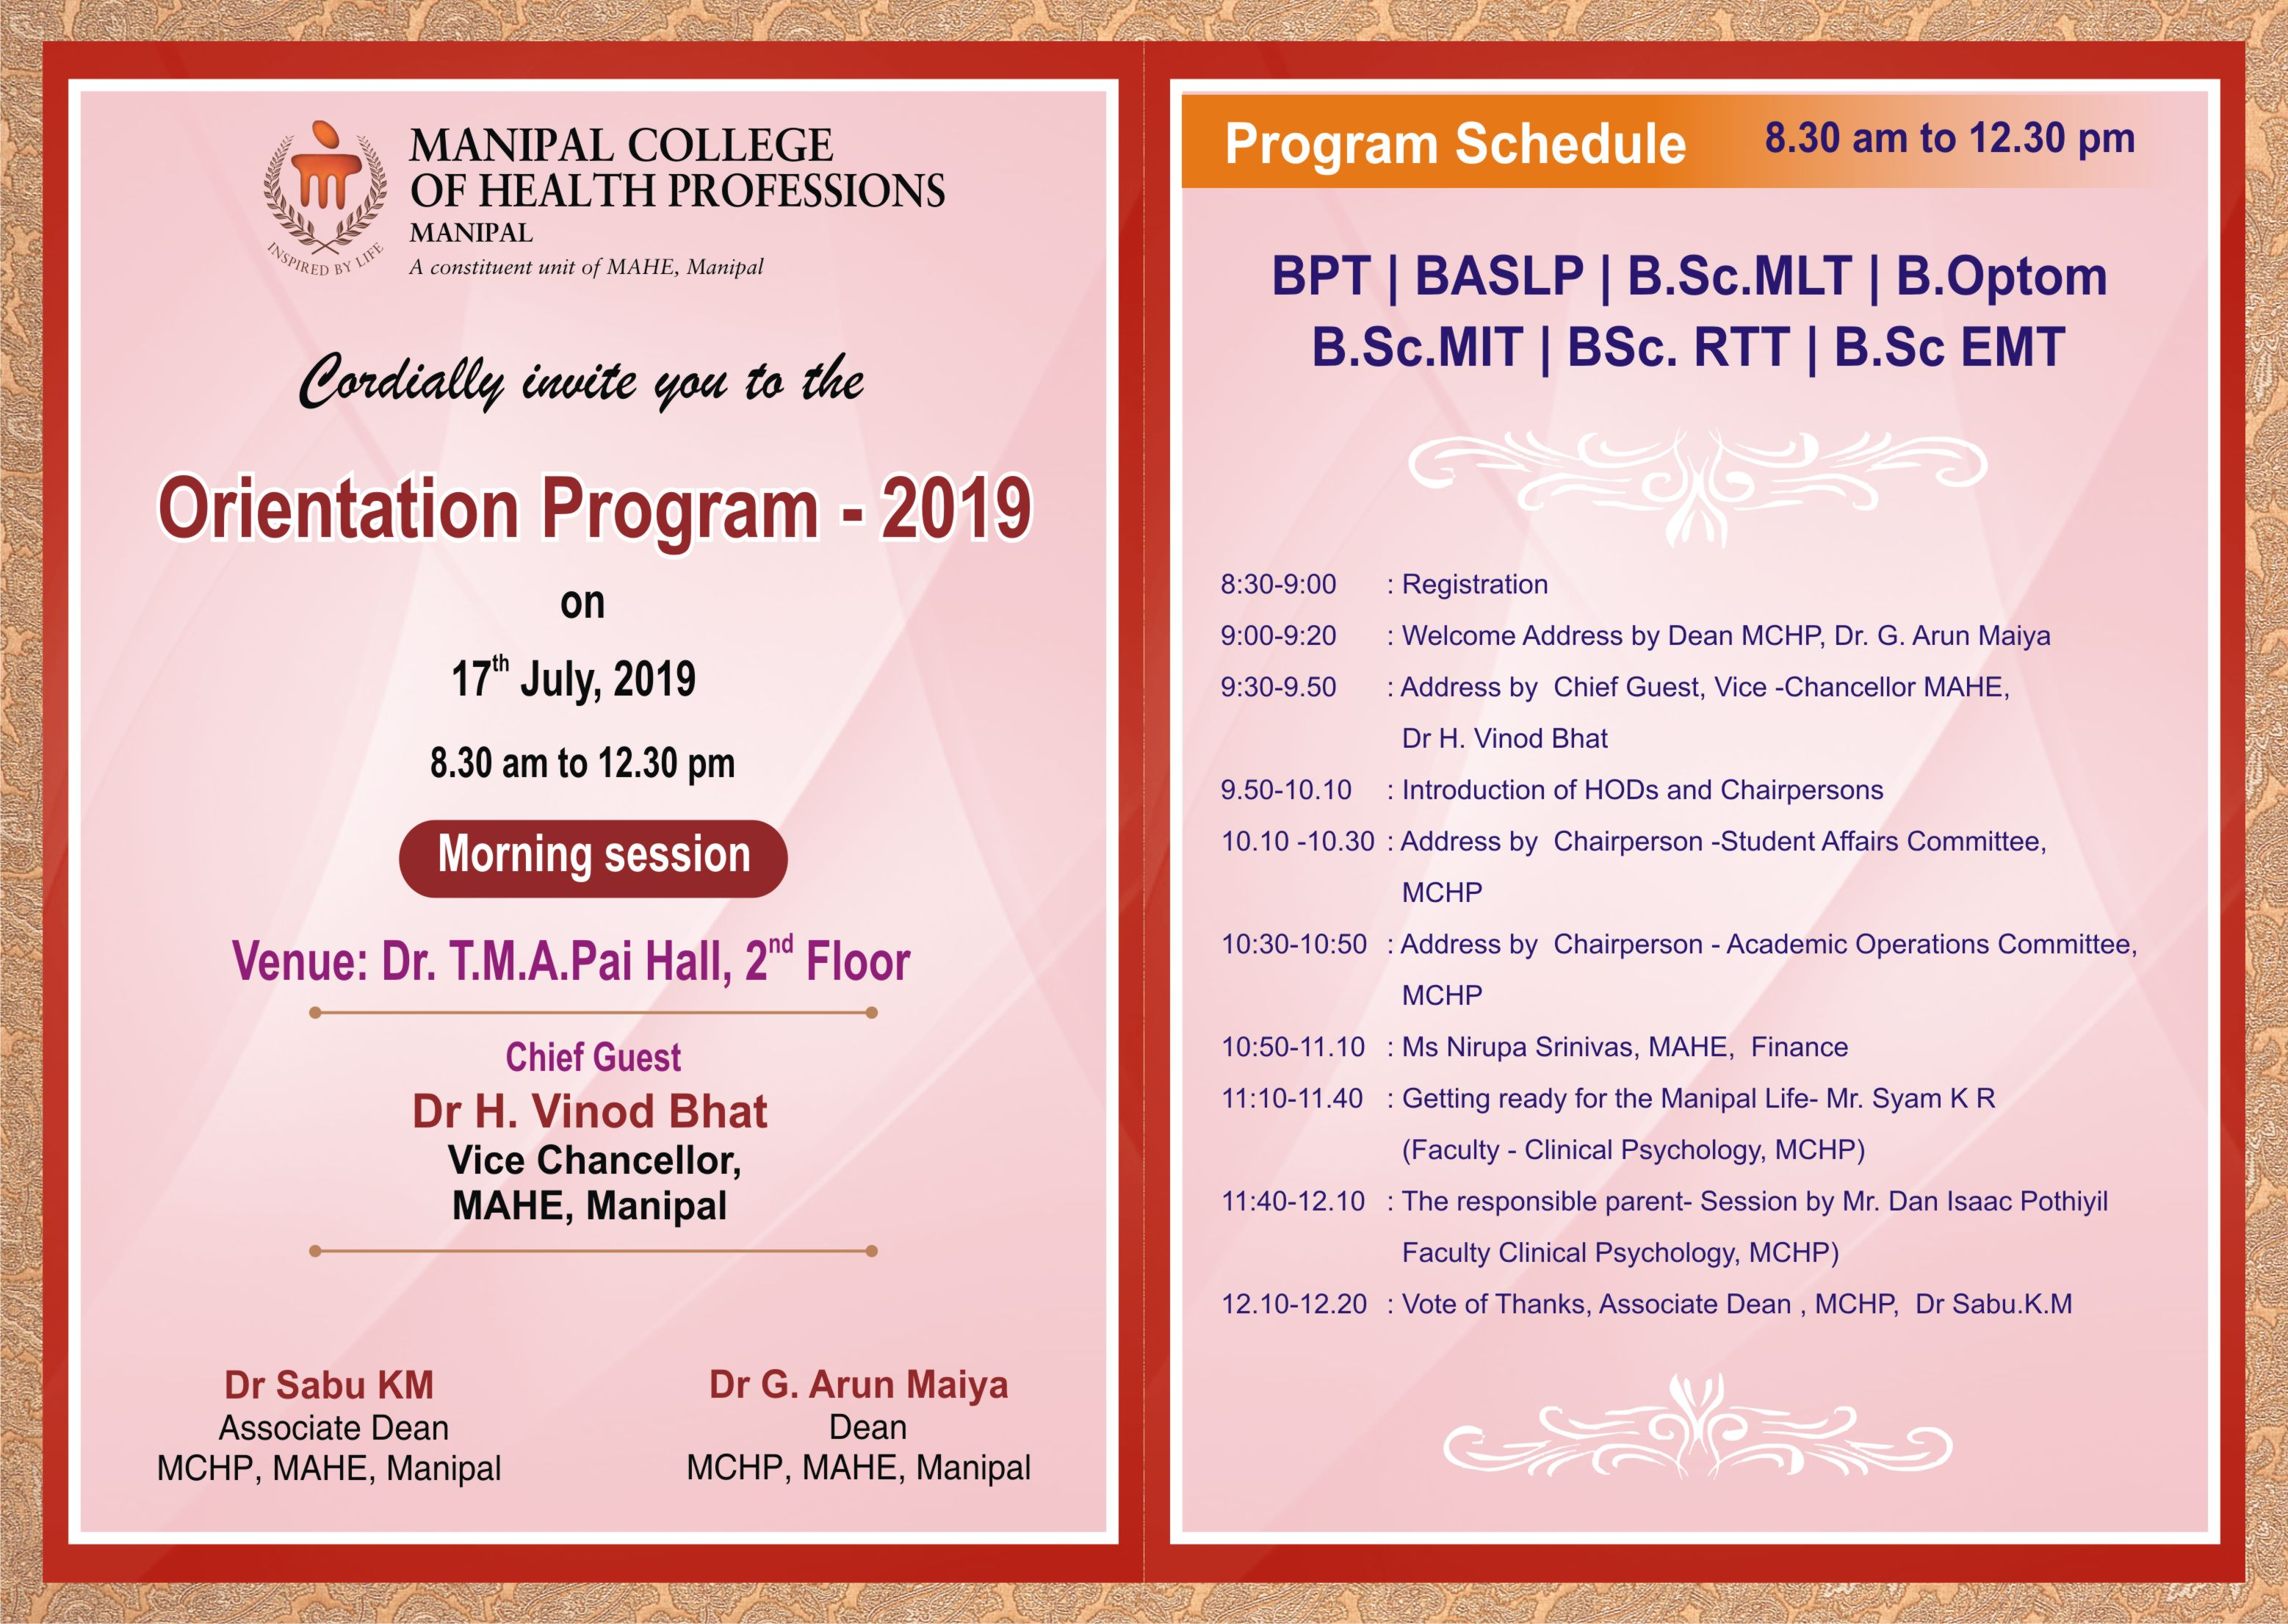 Manipal College of Health Professions | MCHP Manipal